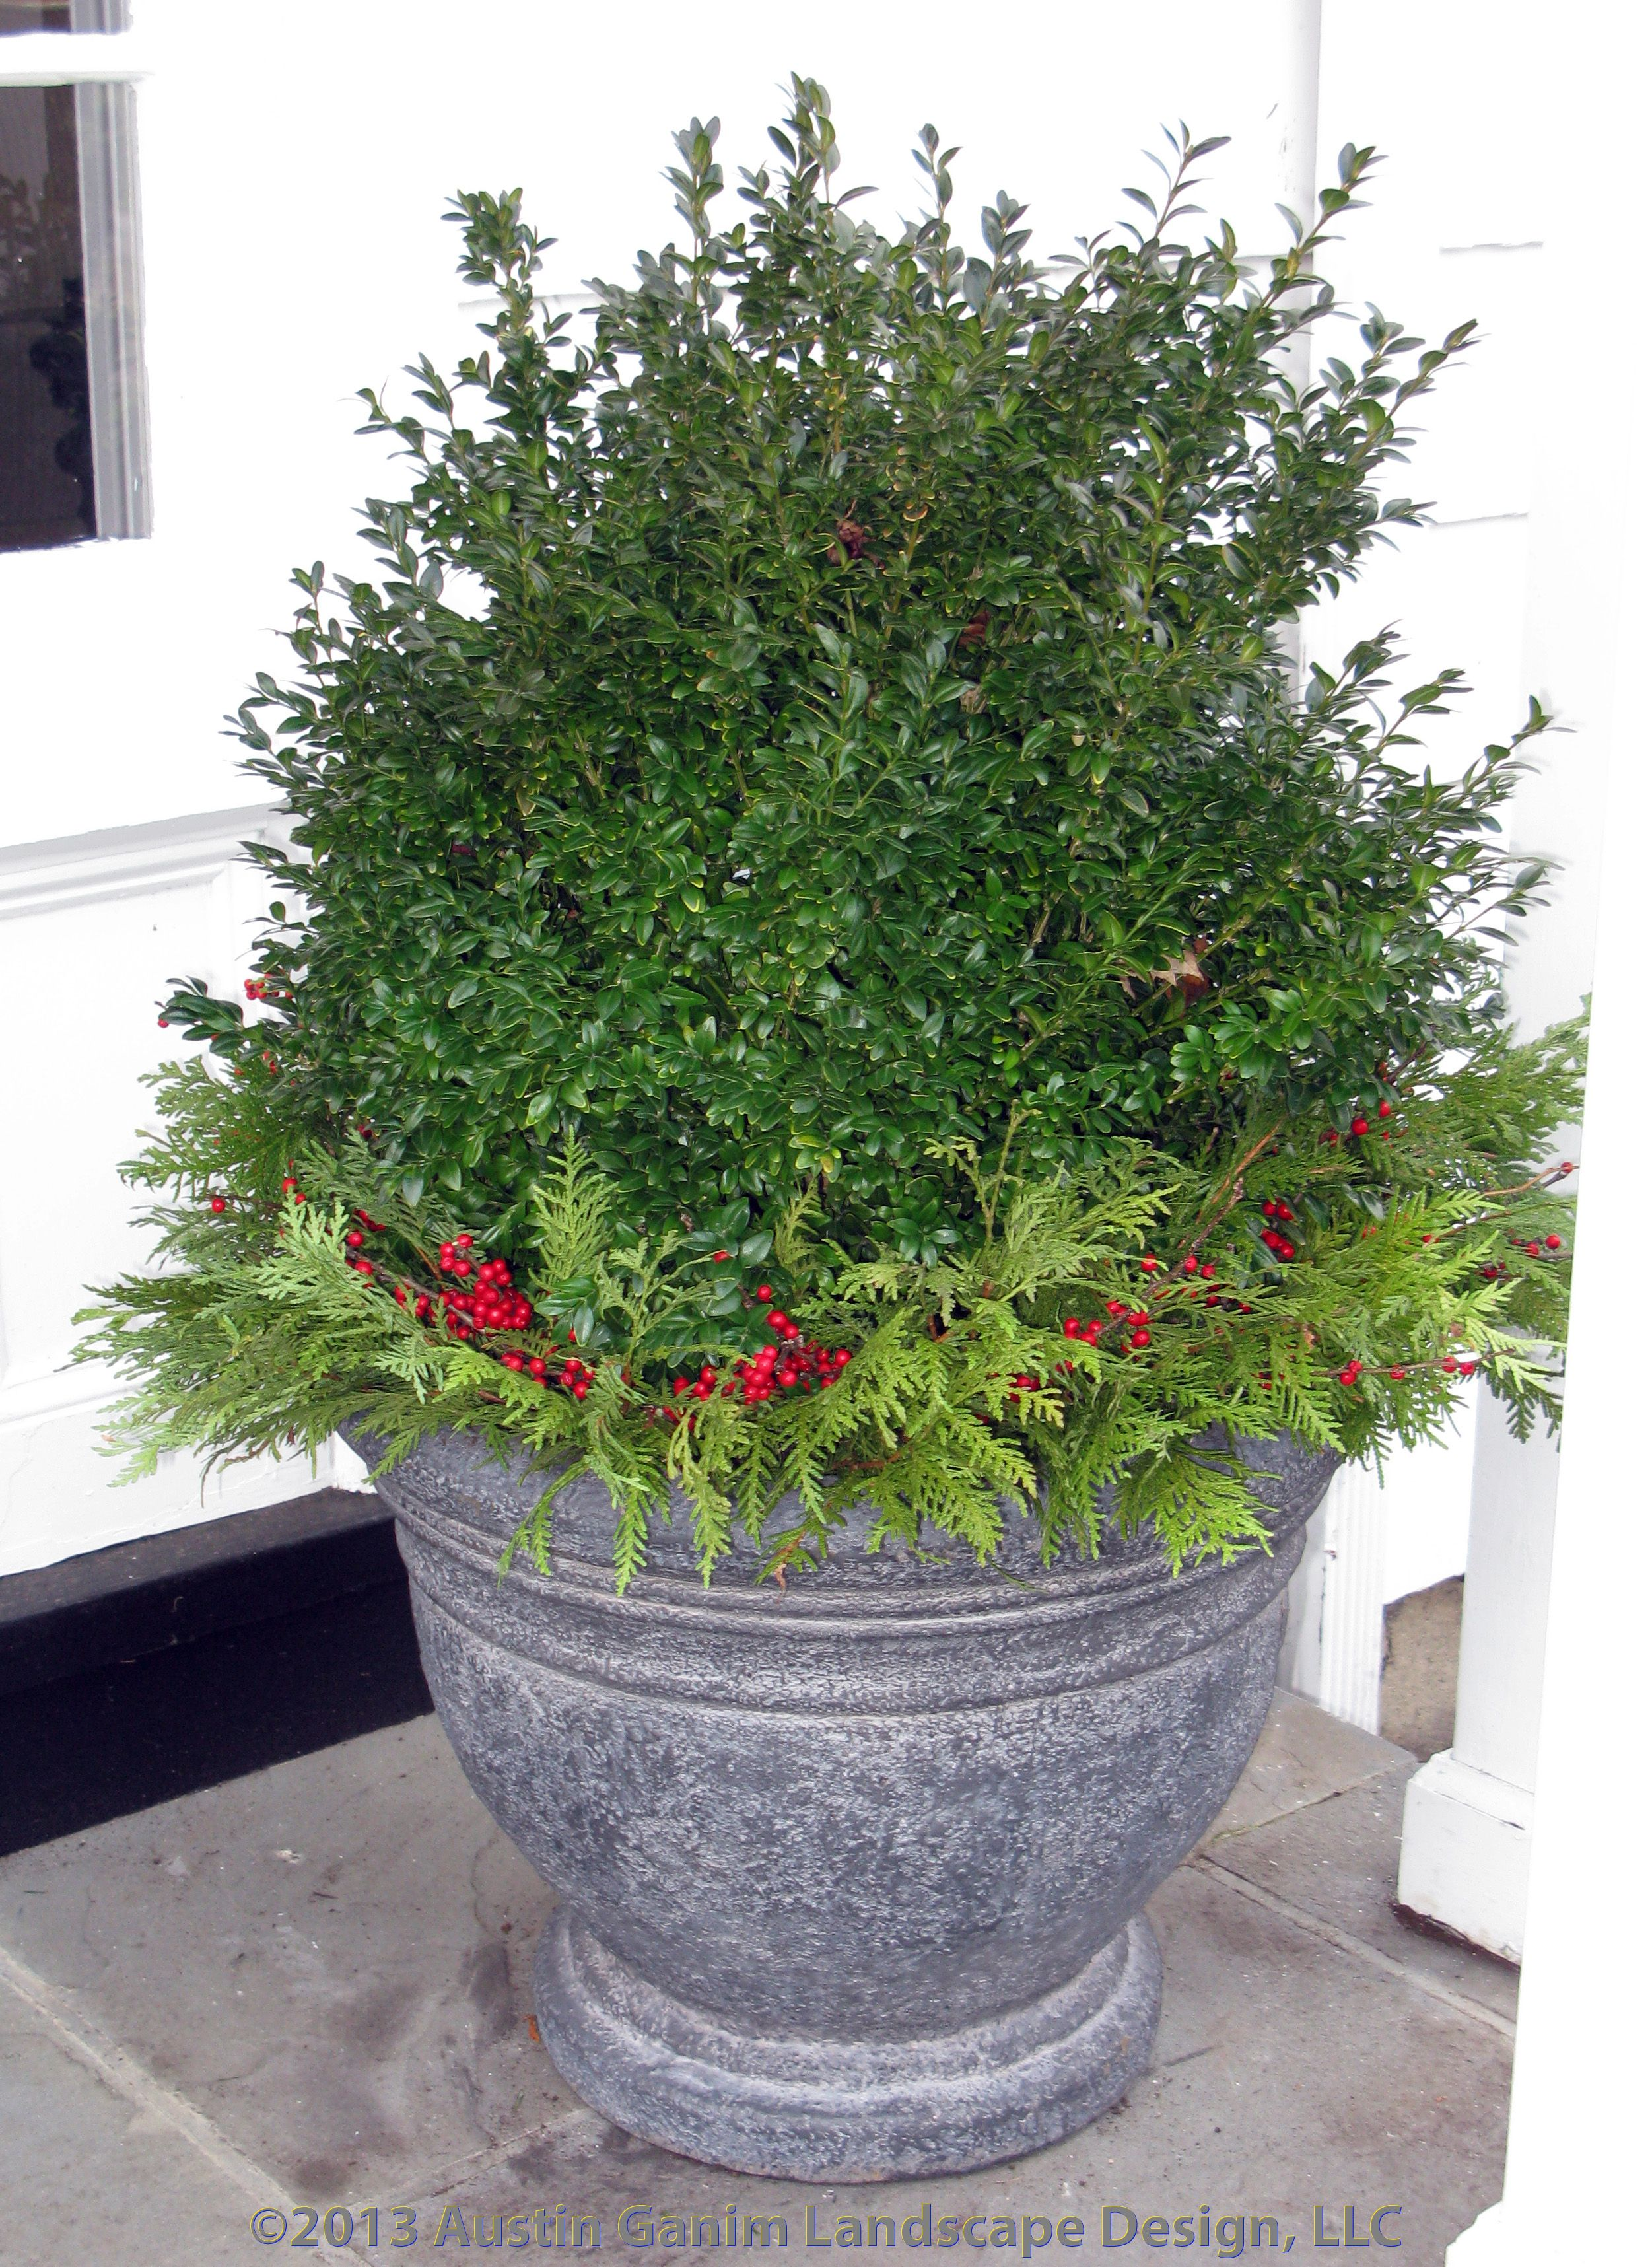 Urban gardening planters - Spruce Up Your Existing Boxwood Containers With Some Holiday Greens And Berries